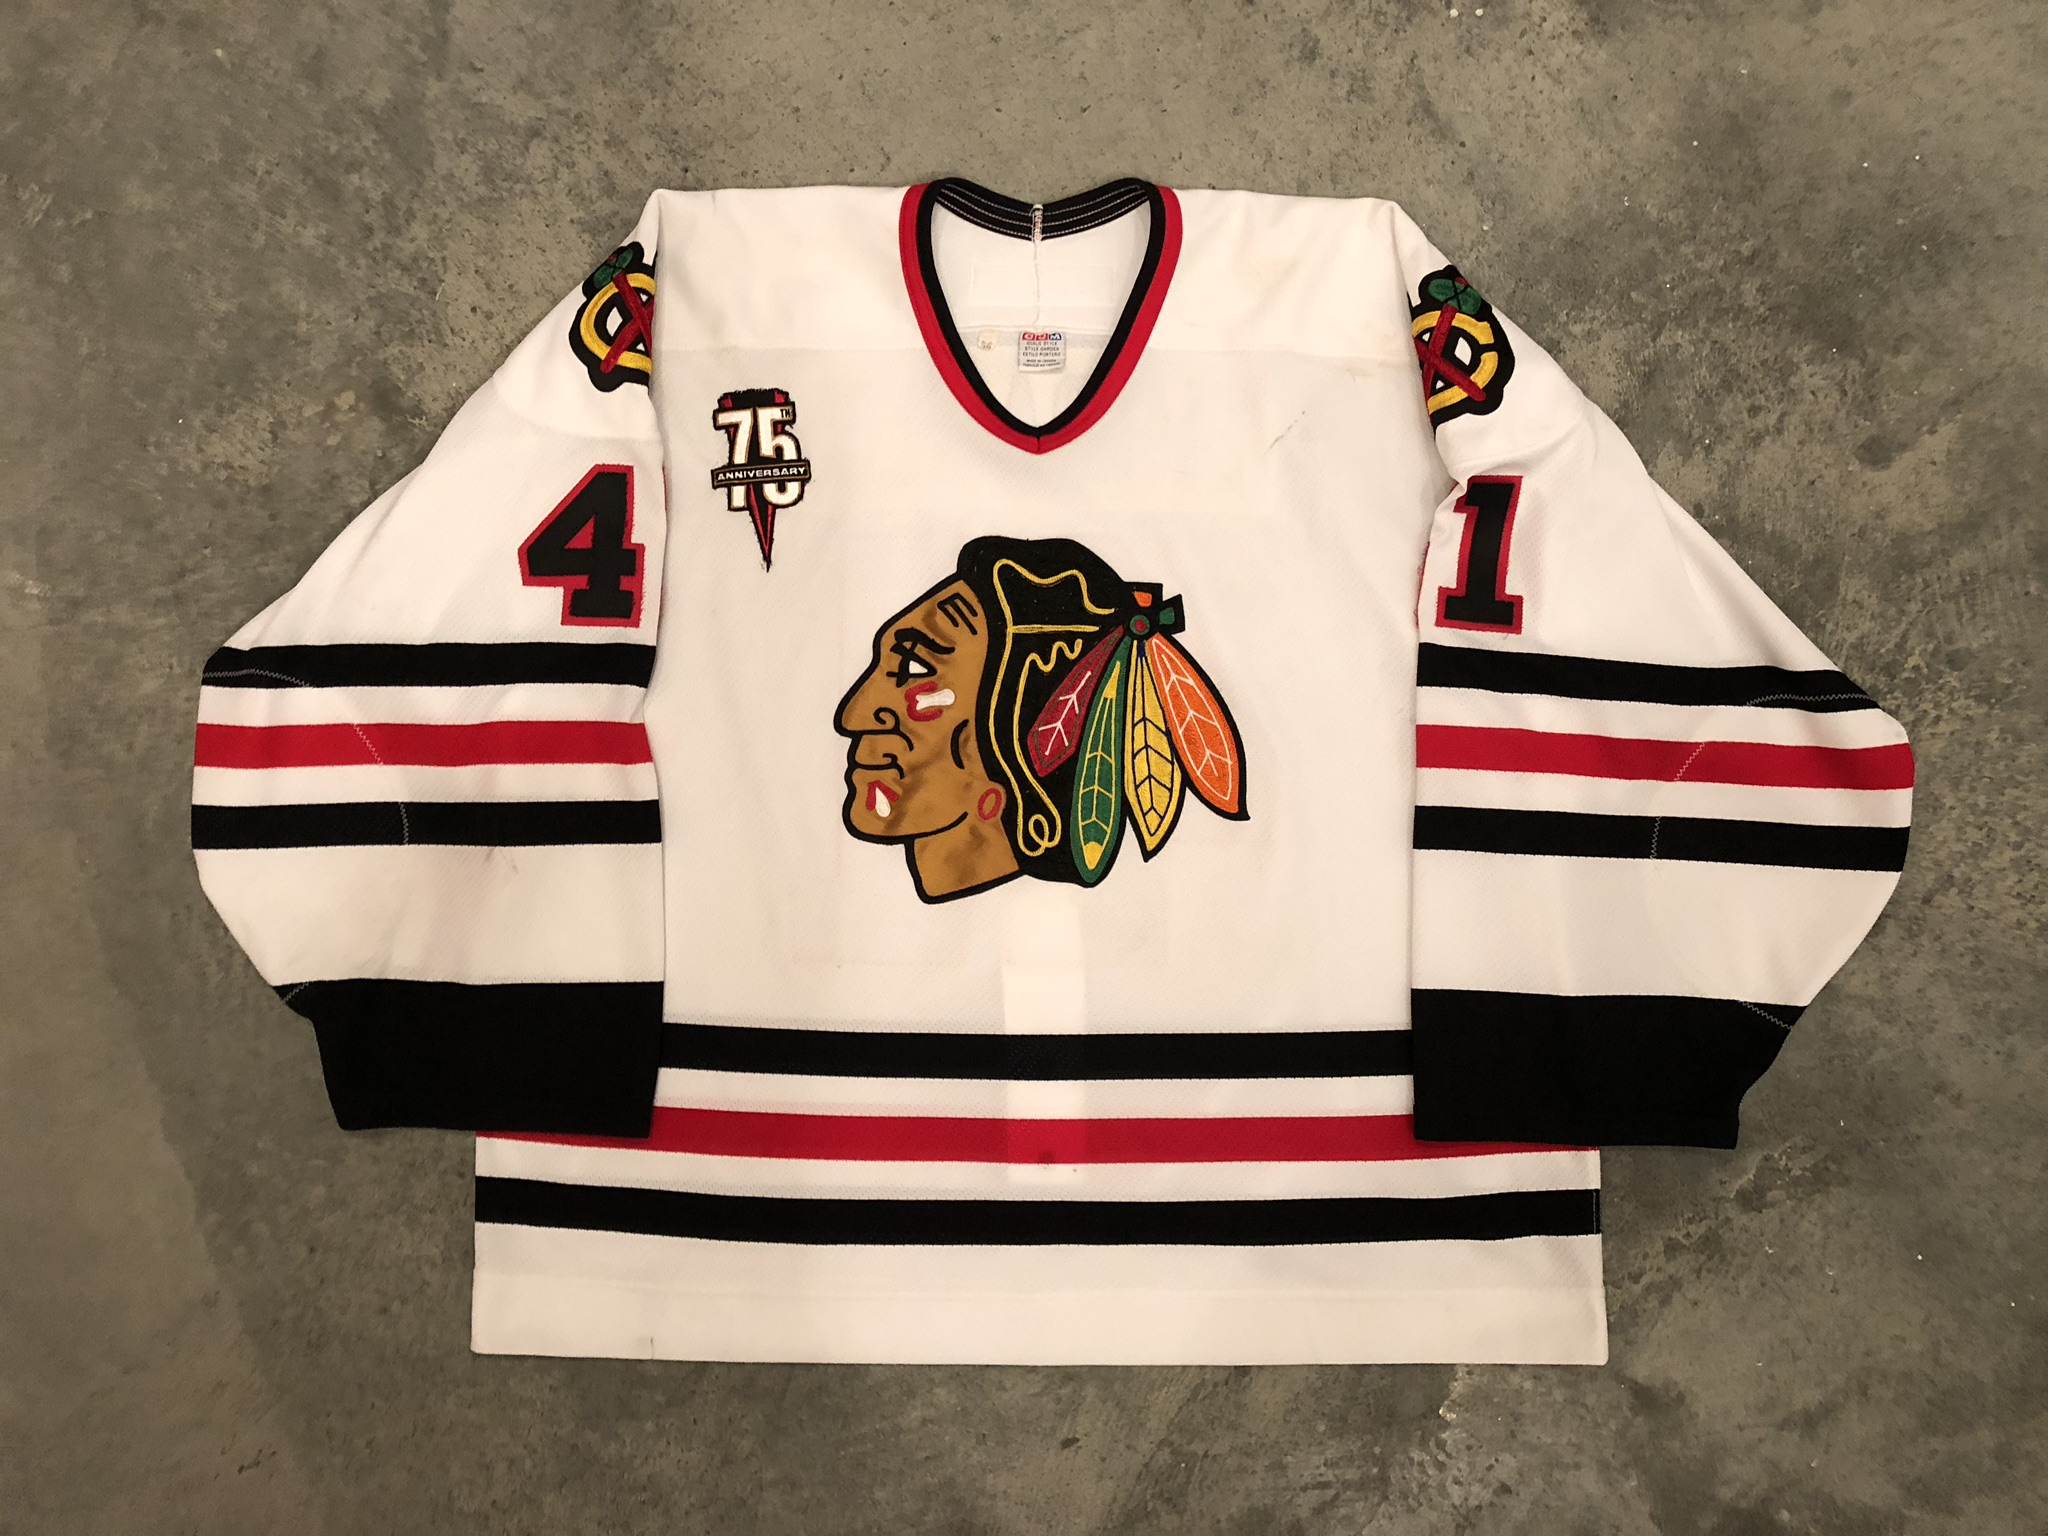 2001-02 Jocelyn Thibault game worn home jersey with Blackhawks 75th anniversary patch